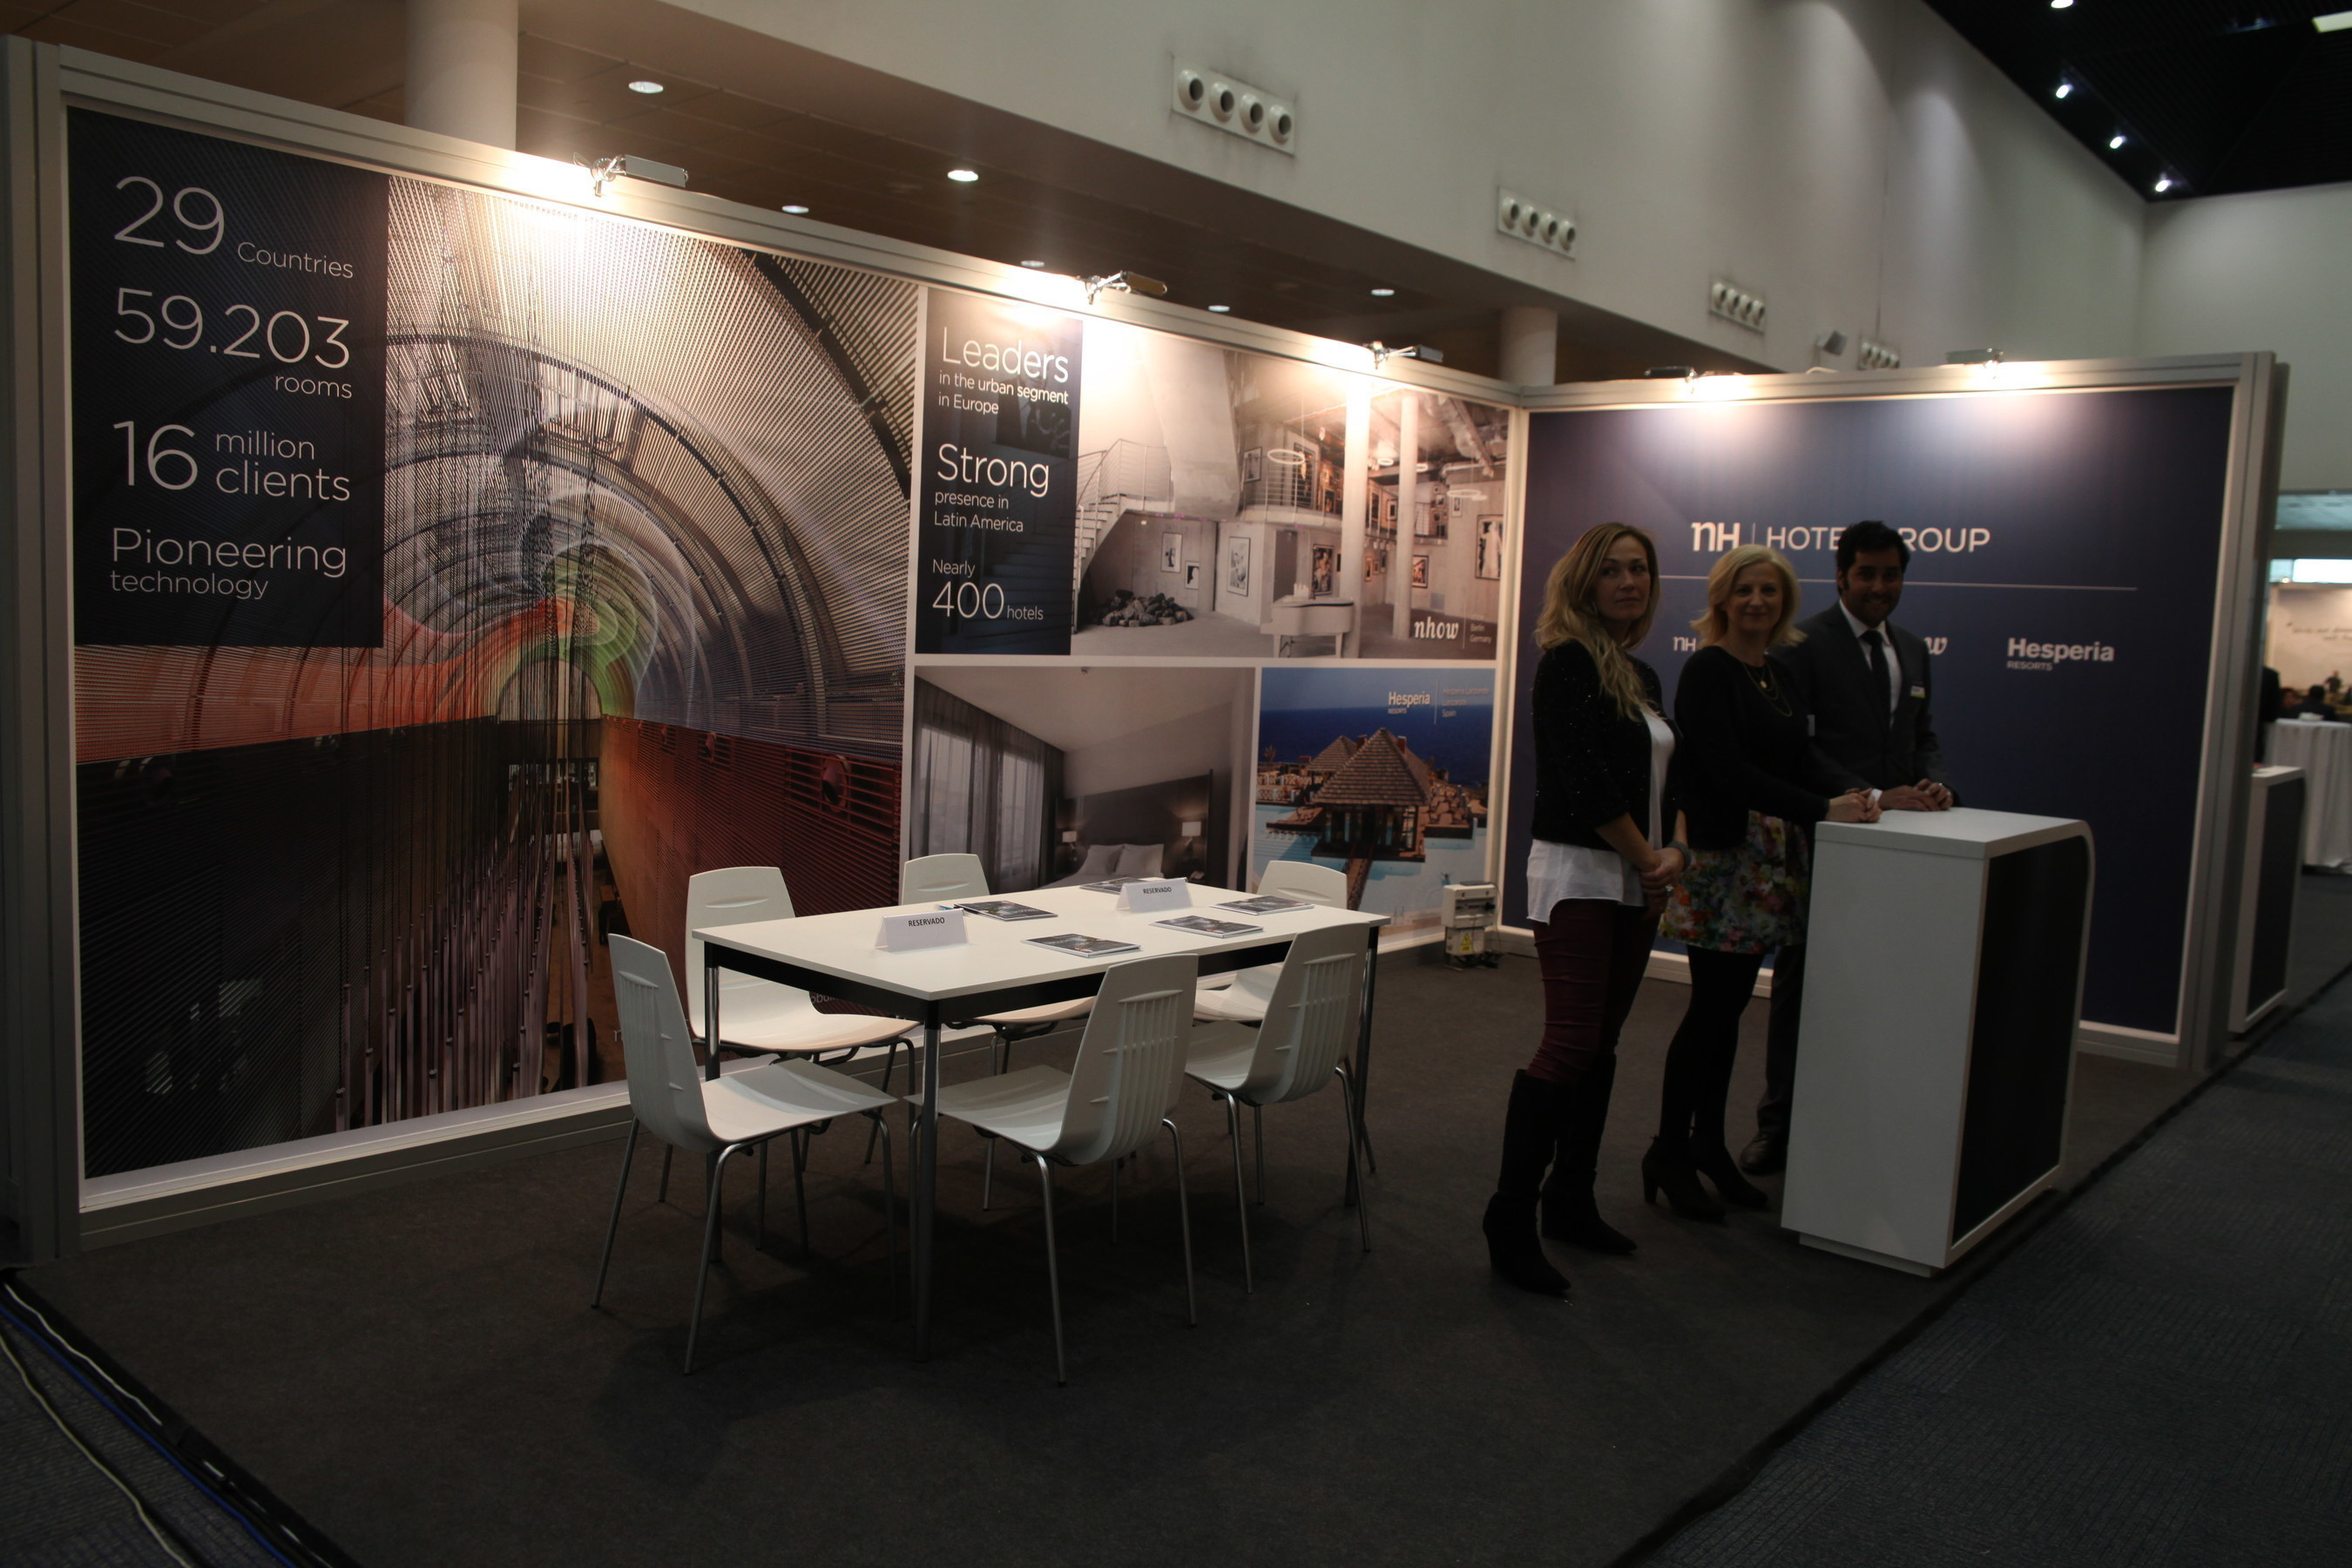 NH Hotel Group, a subsidiary of HNA Group and the third largest hotel group in Europe, takes part in the exhibition